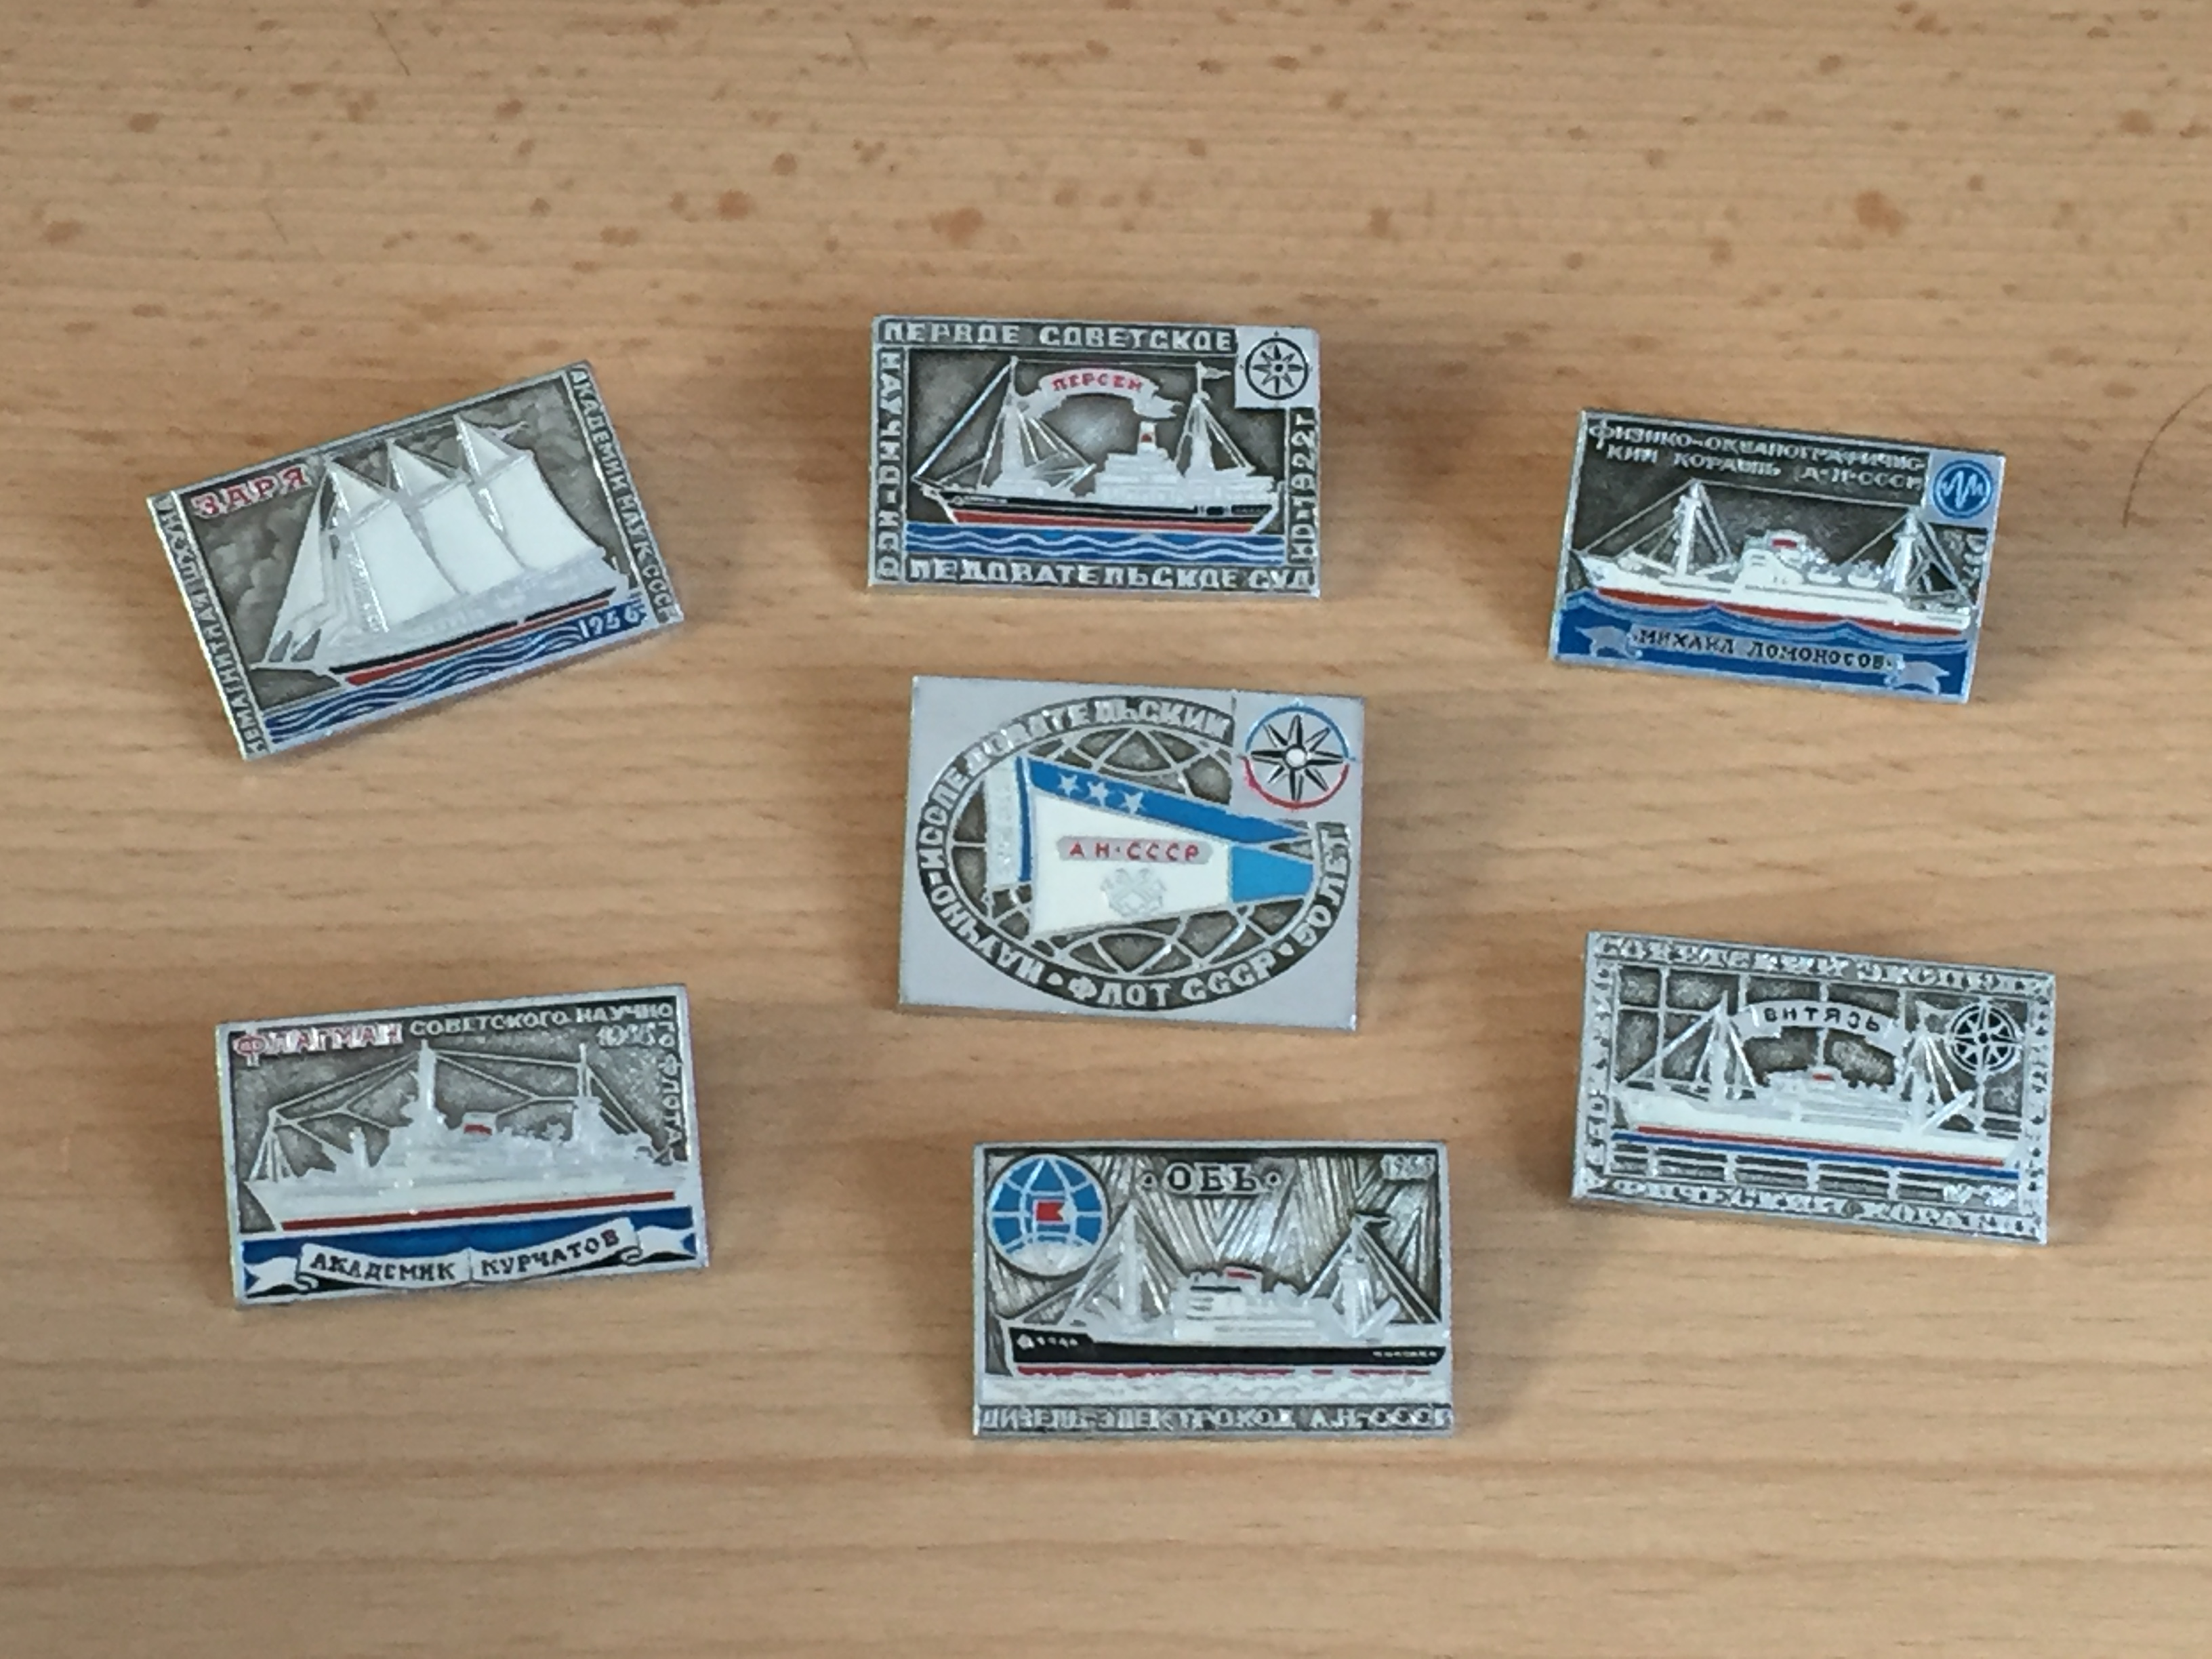 SET OF 7 EARLY RUSSIAN SHIPPING BADGES DATED CIRCA 1955-65